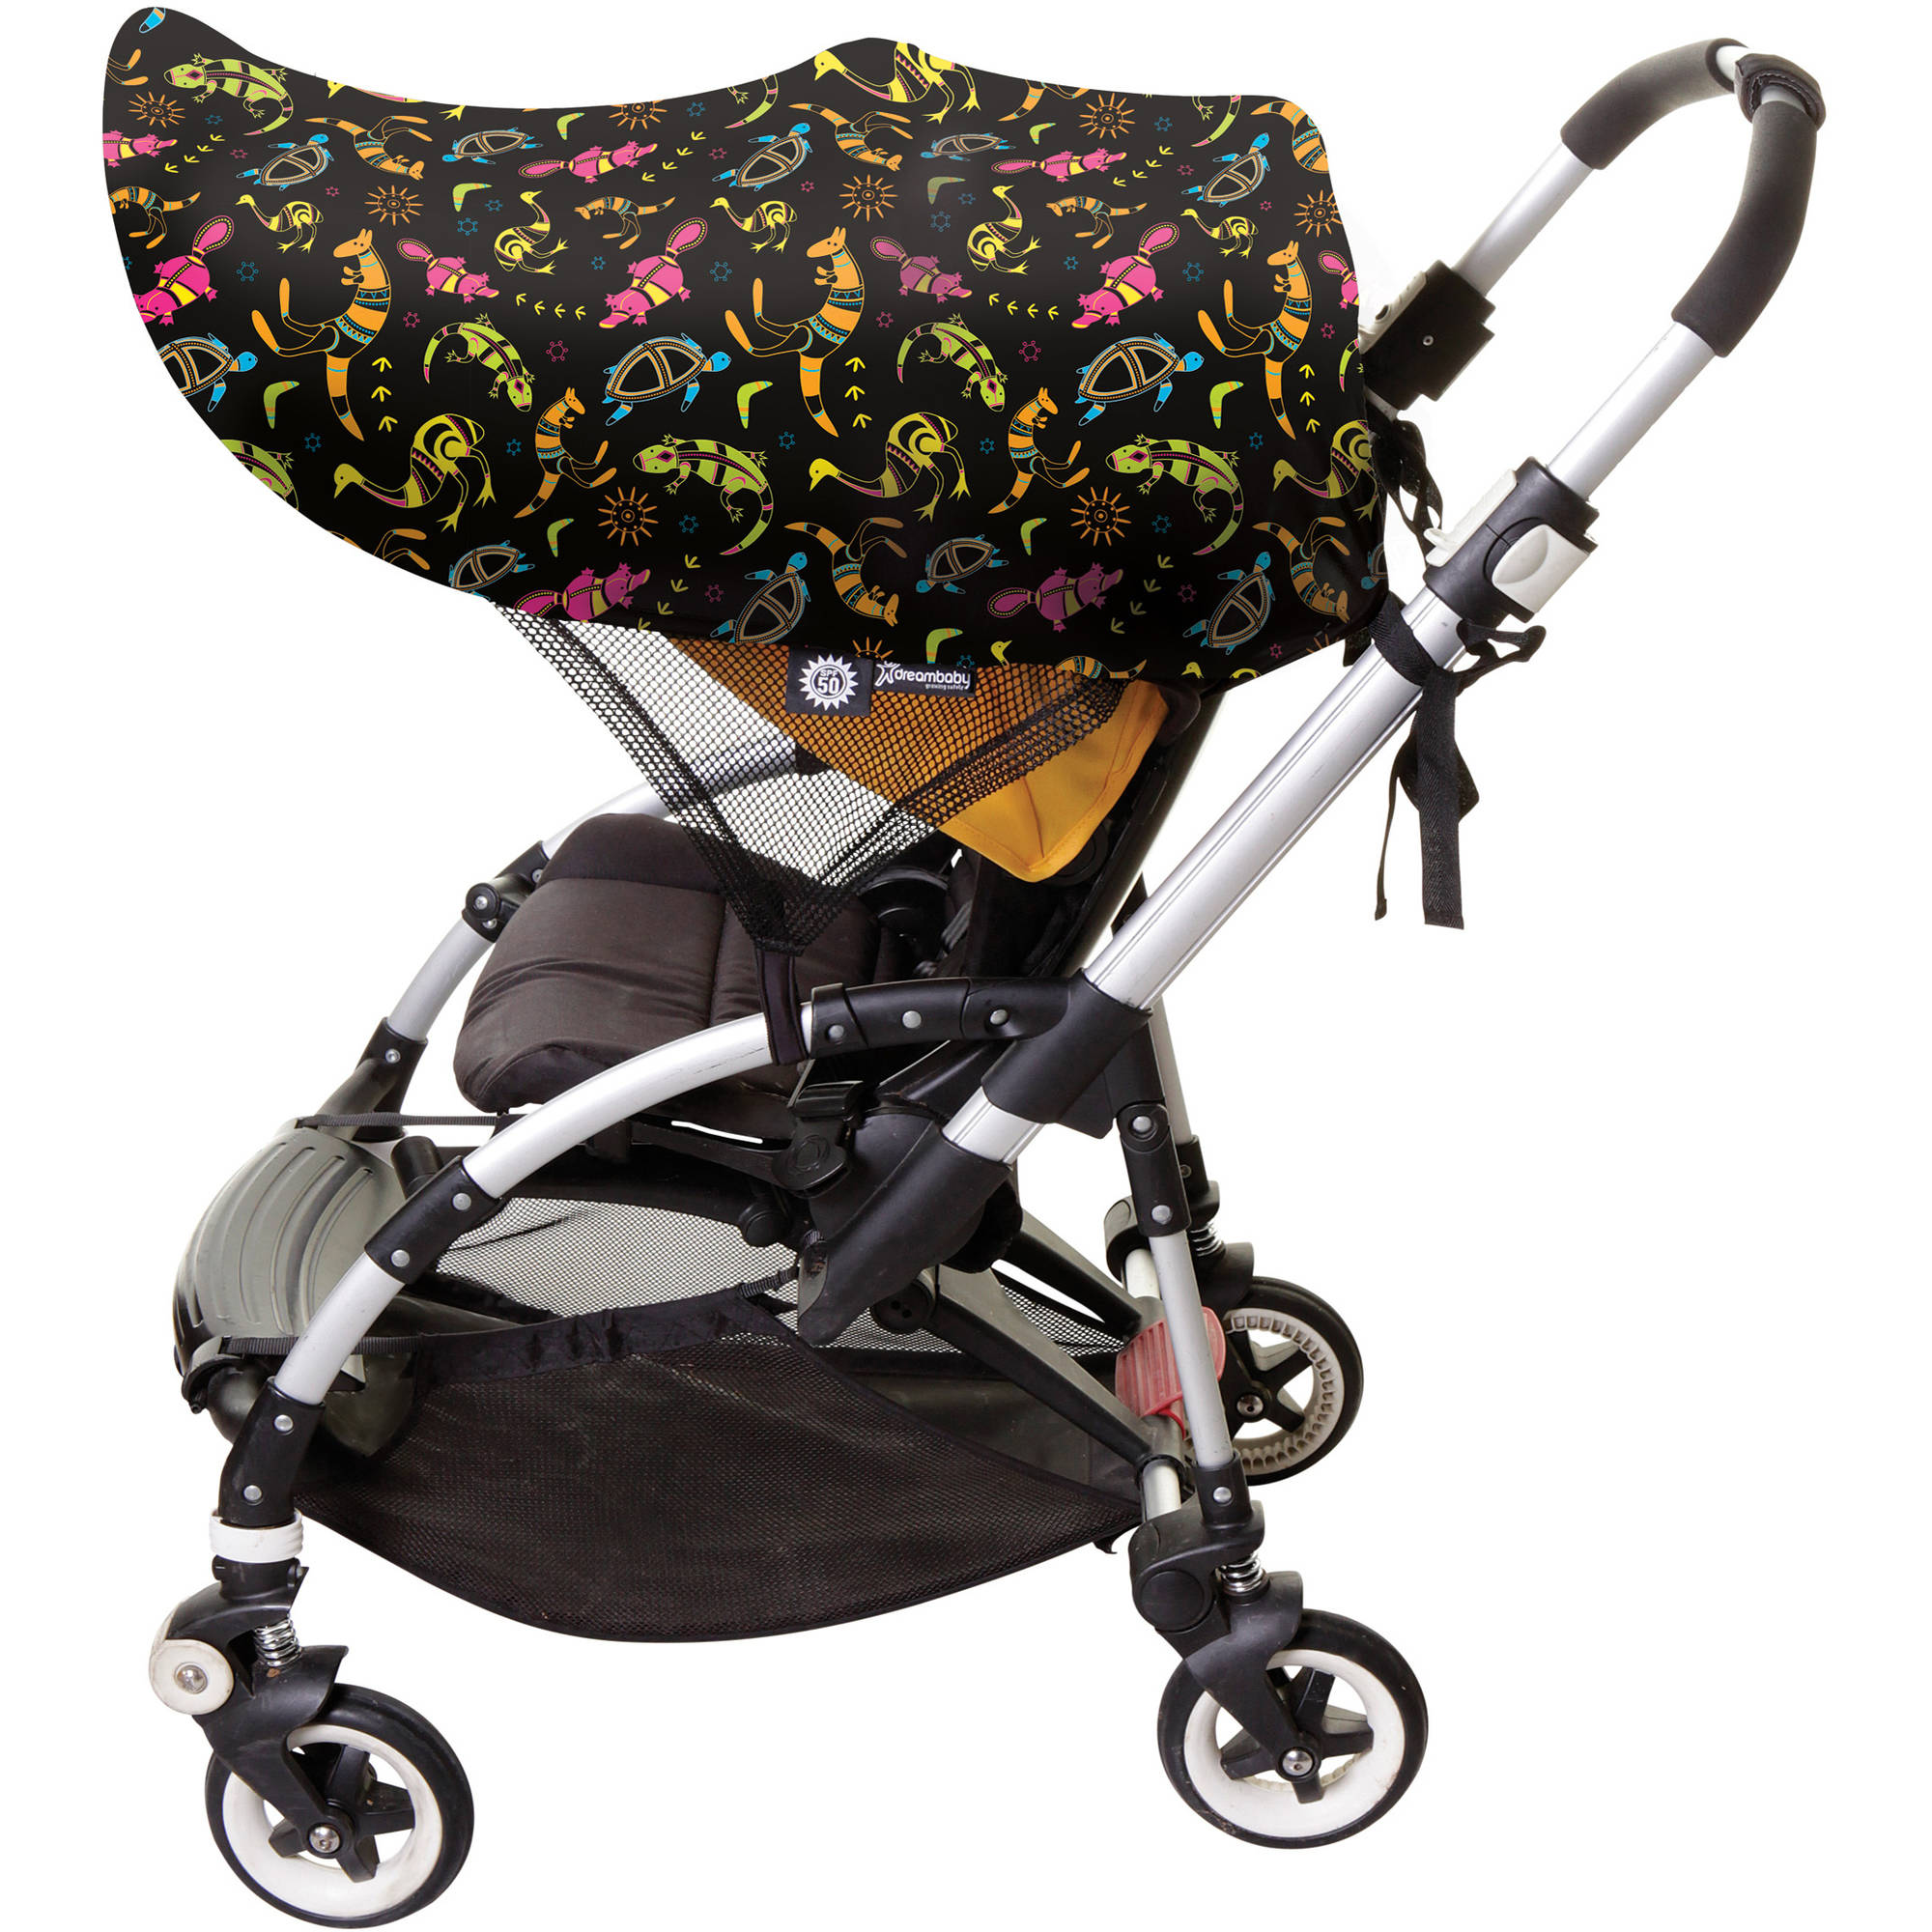 Dreambaby Large Strollerbuddy Extenda-Shade, Animal Print